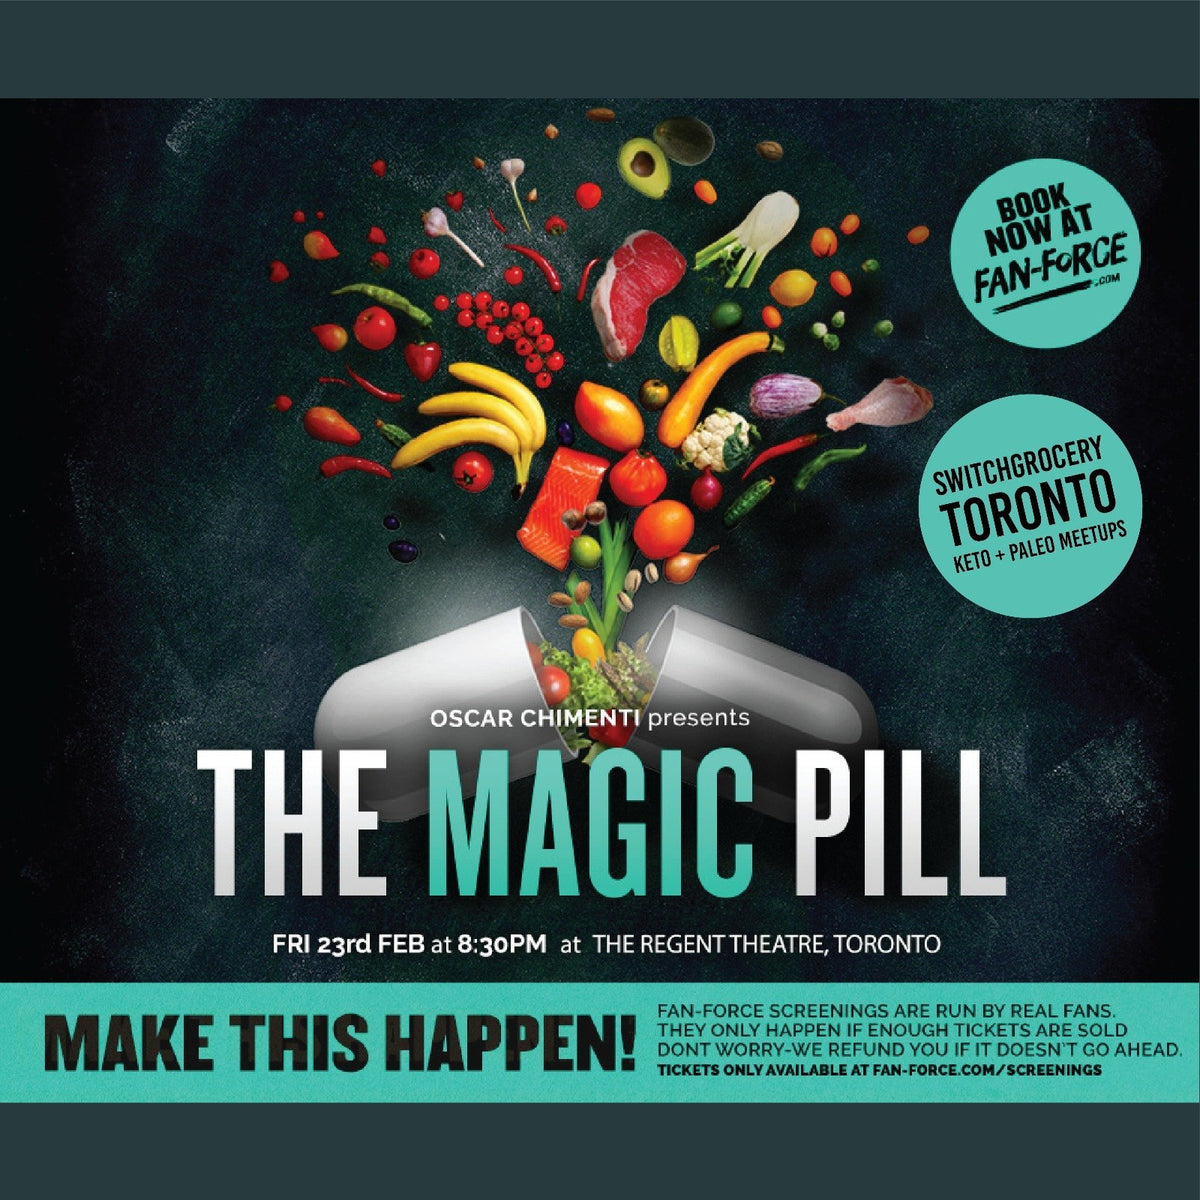 Meetup: The Magic Pill movie screening - Friday, February 23rd, 2018